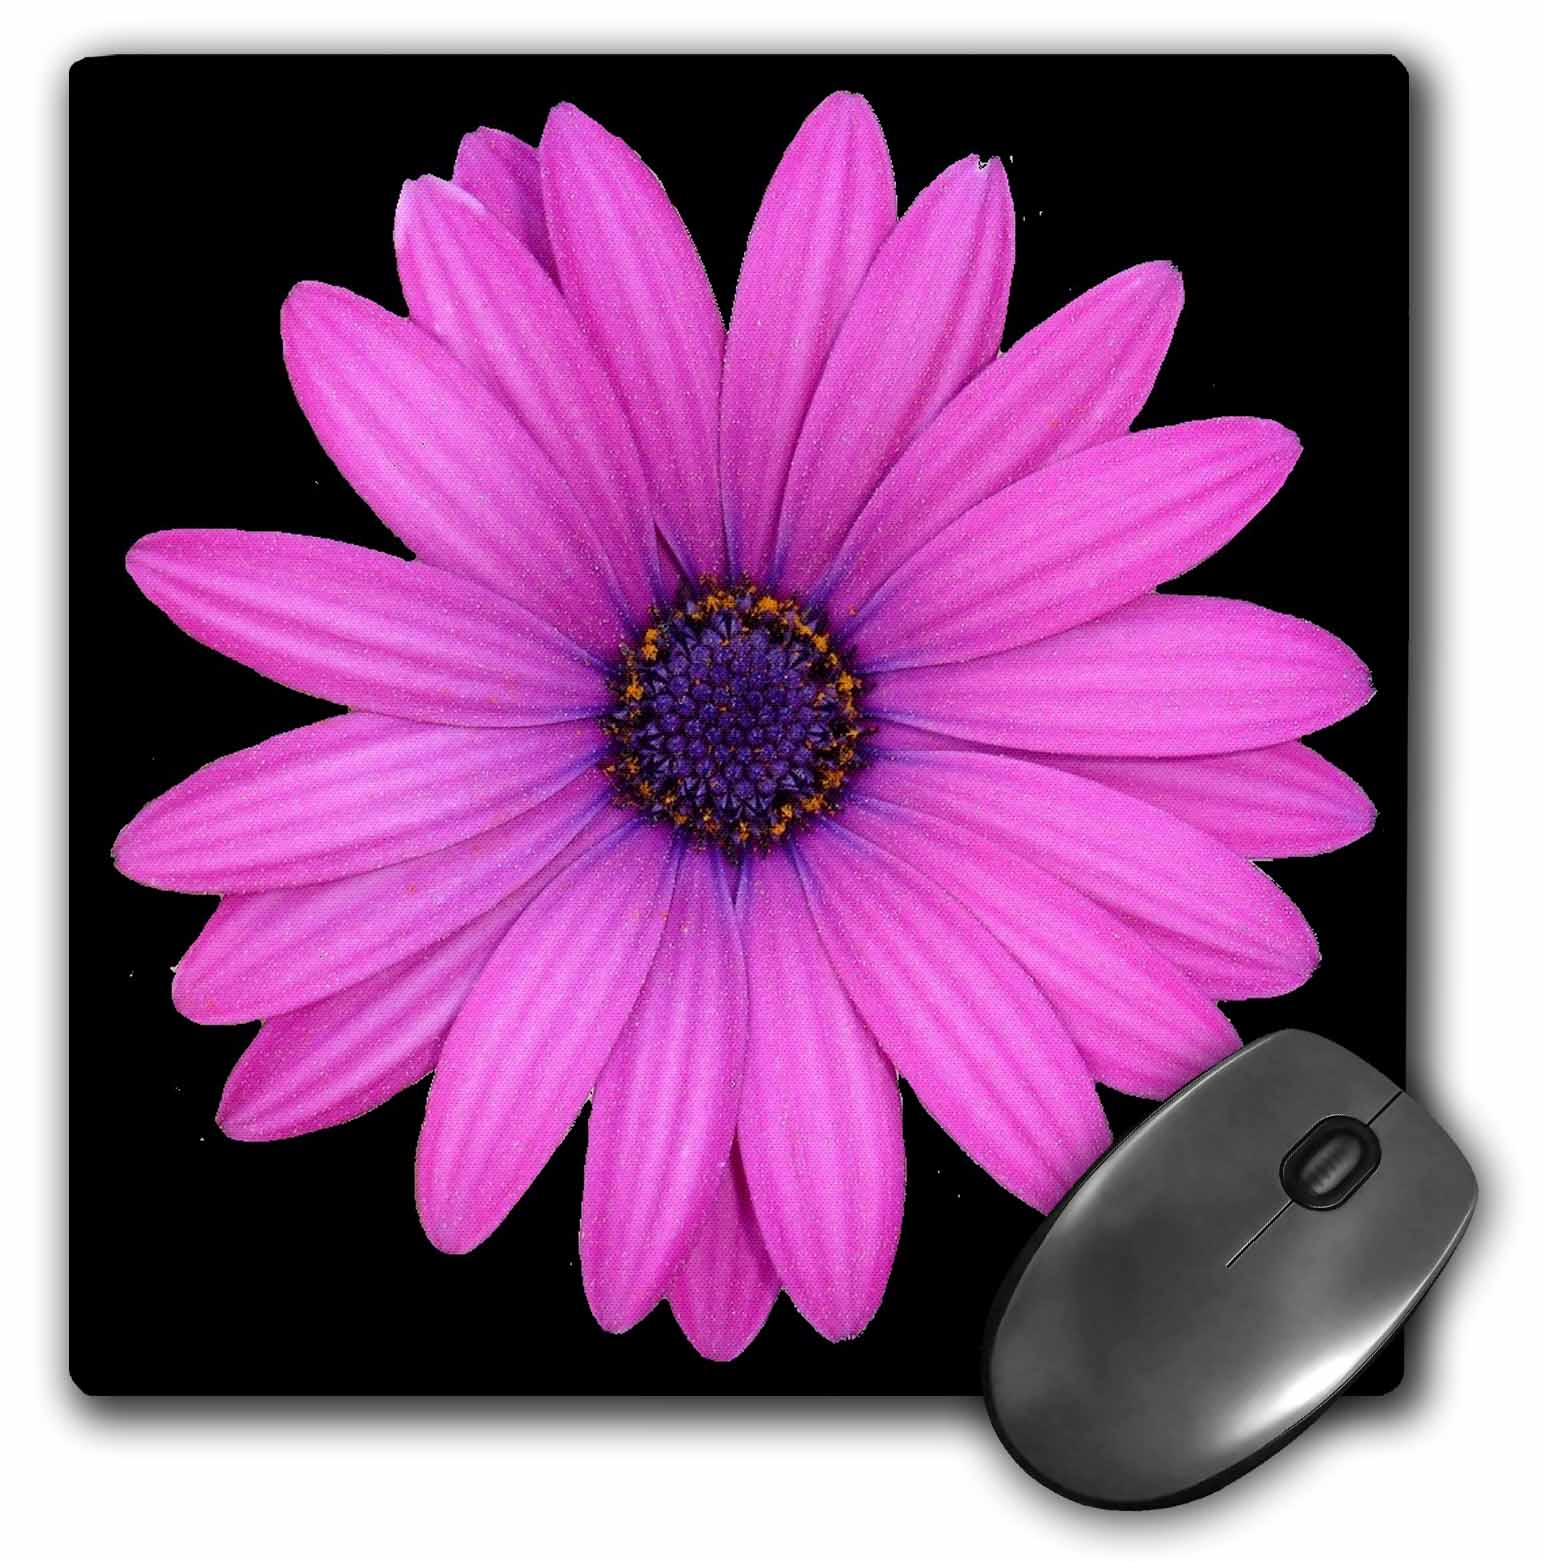 3dRose African Daisy A photograph of a bright pink blue eyed daisy isolated on a black background, Mouse Pad, 8 by 8 inches